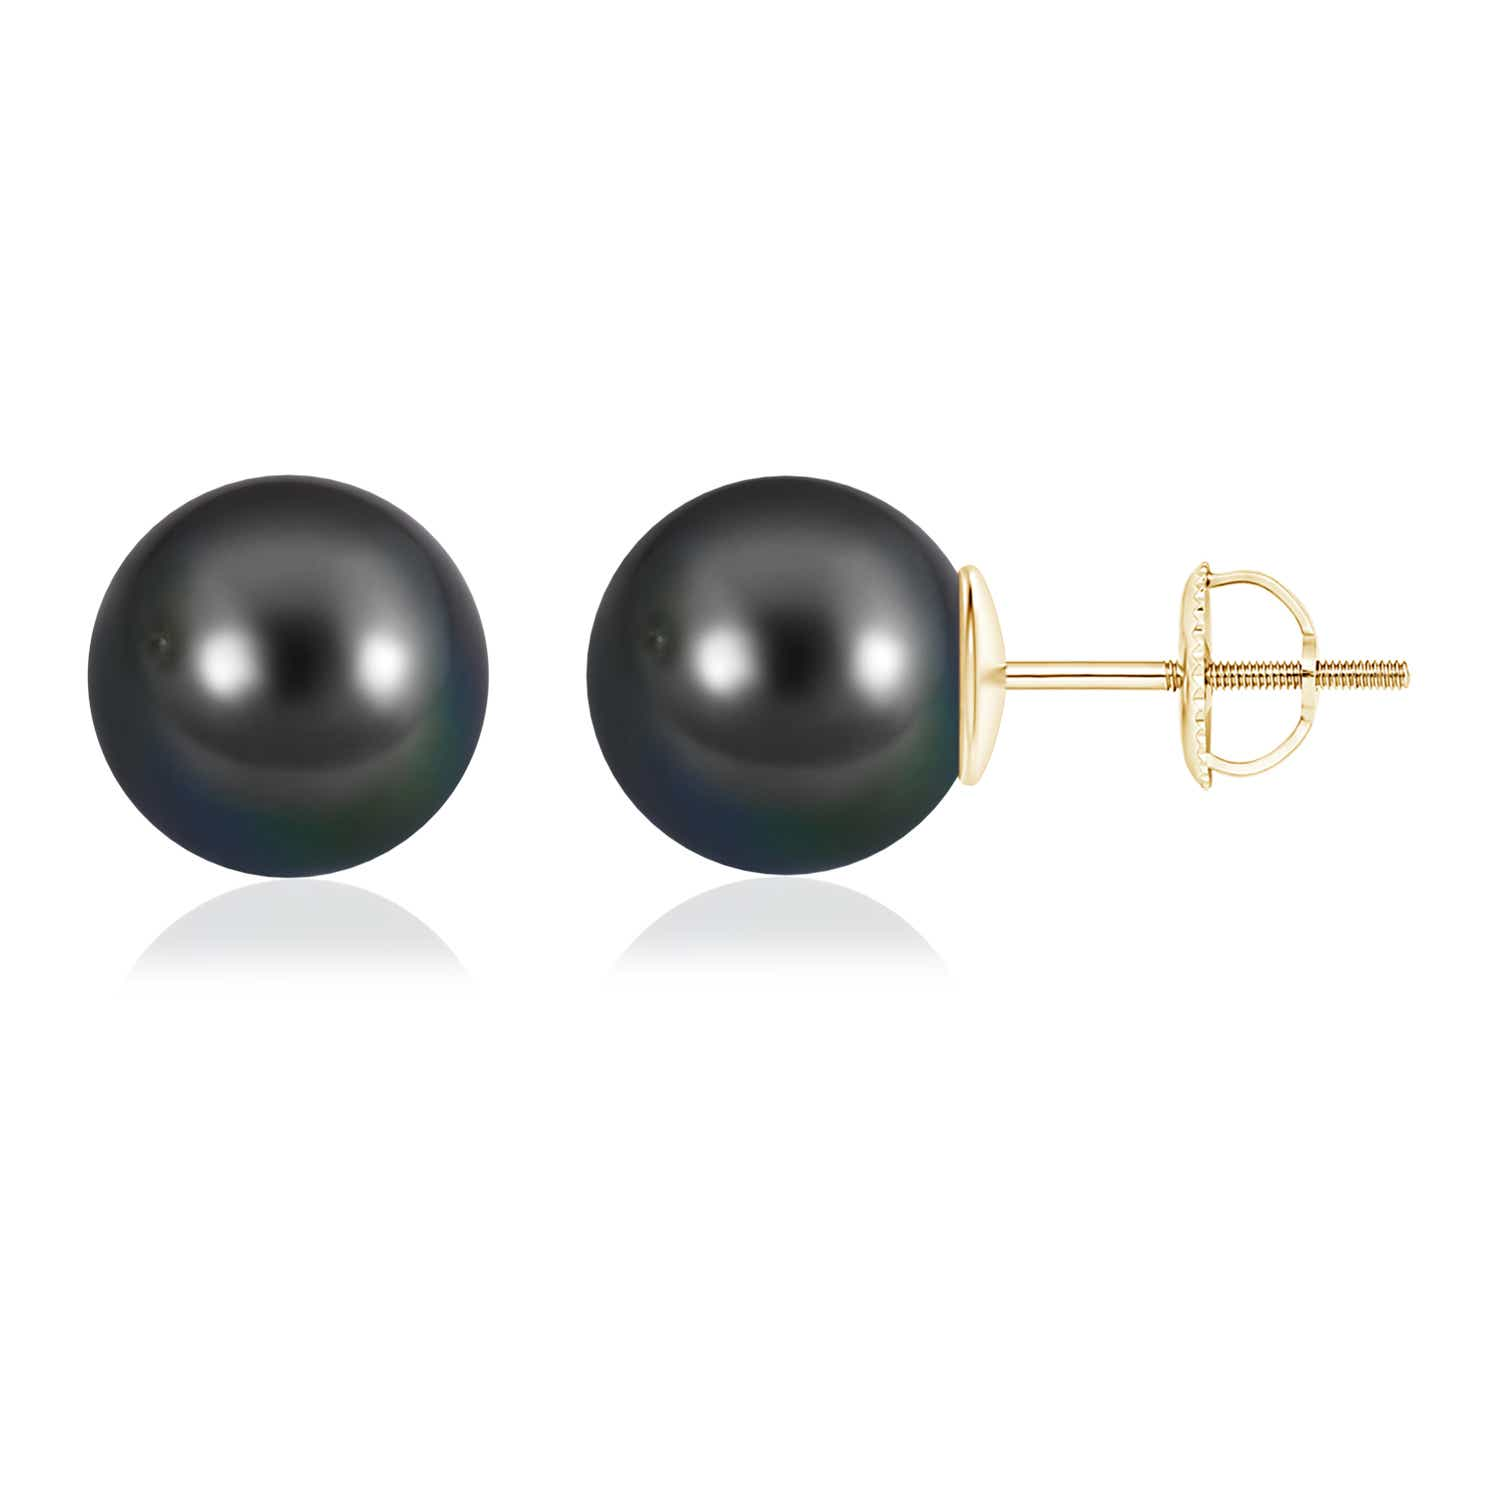 12mm-Tahitian-Cultured-Pearl-Solitaire-Stud-Earrings-14K-White-Gold